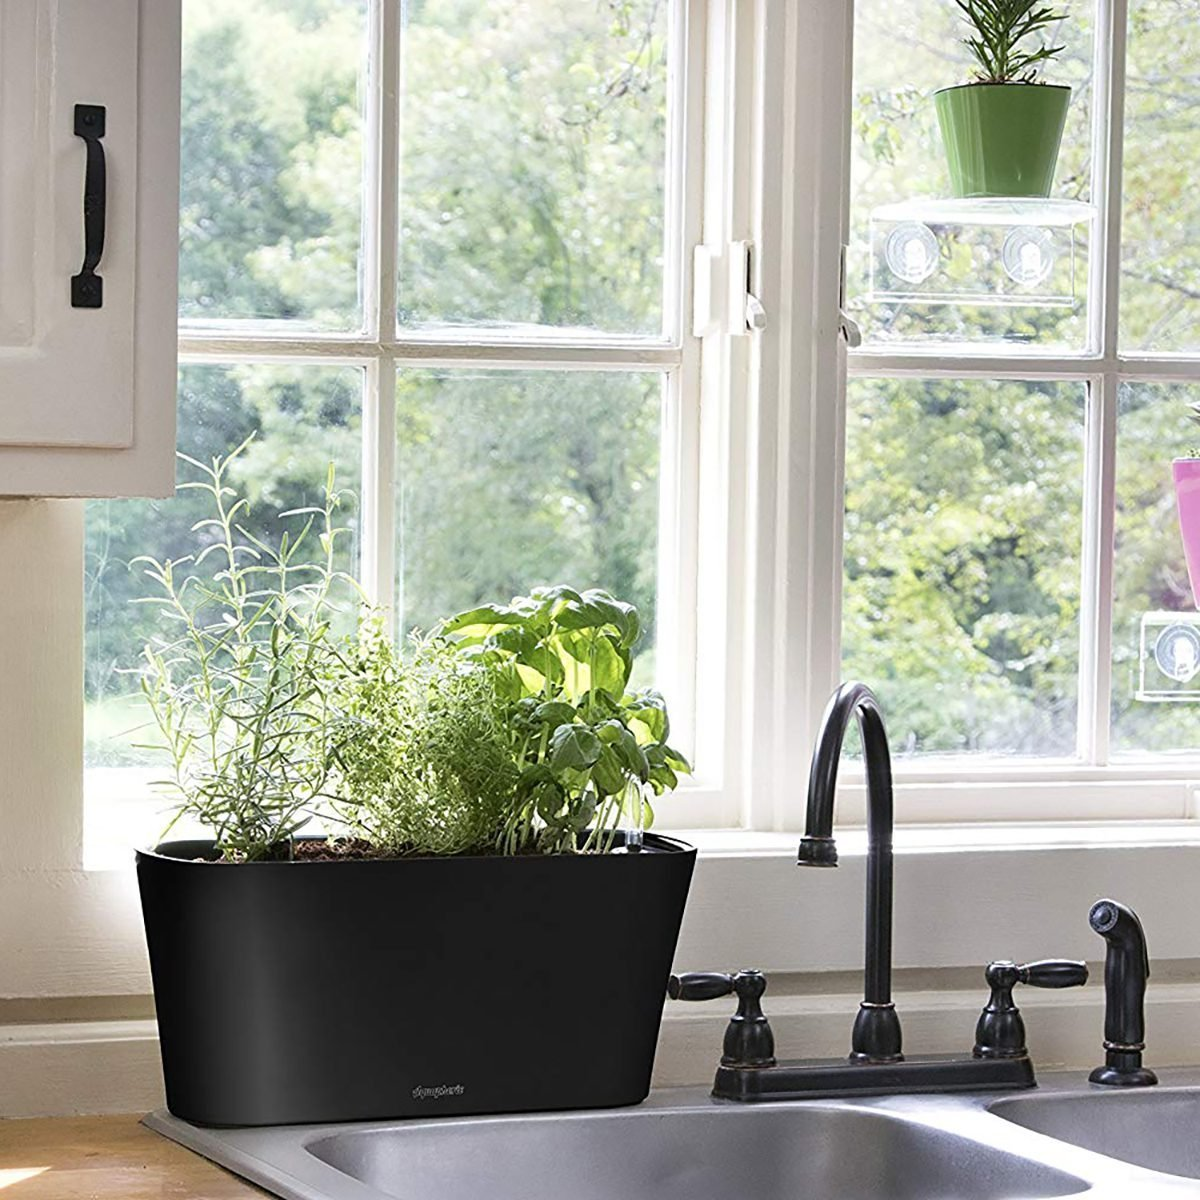 How to Grow a Successful Herb Garden